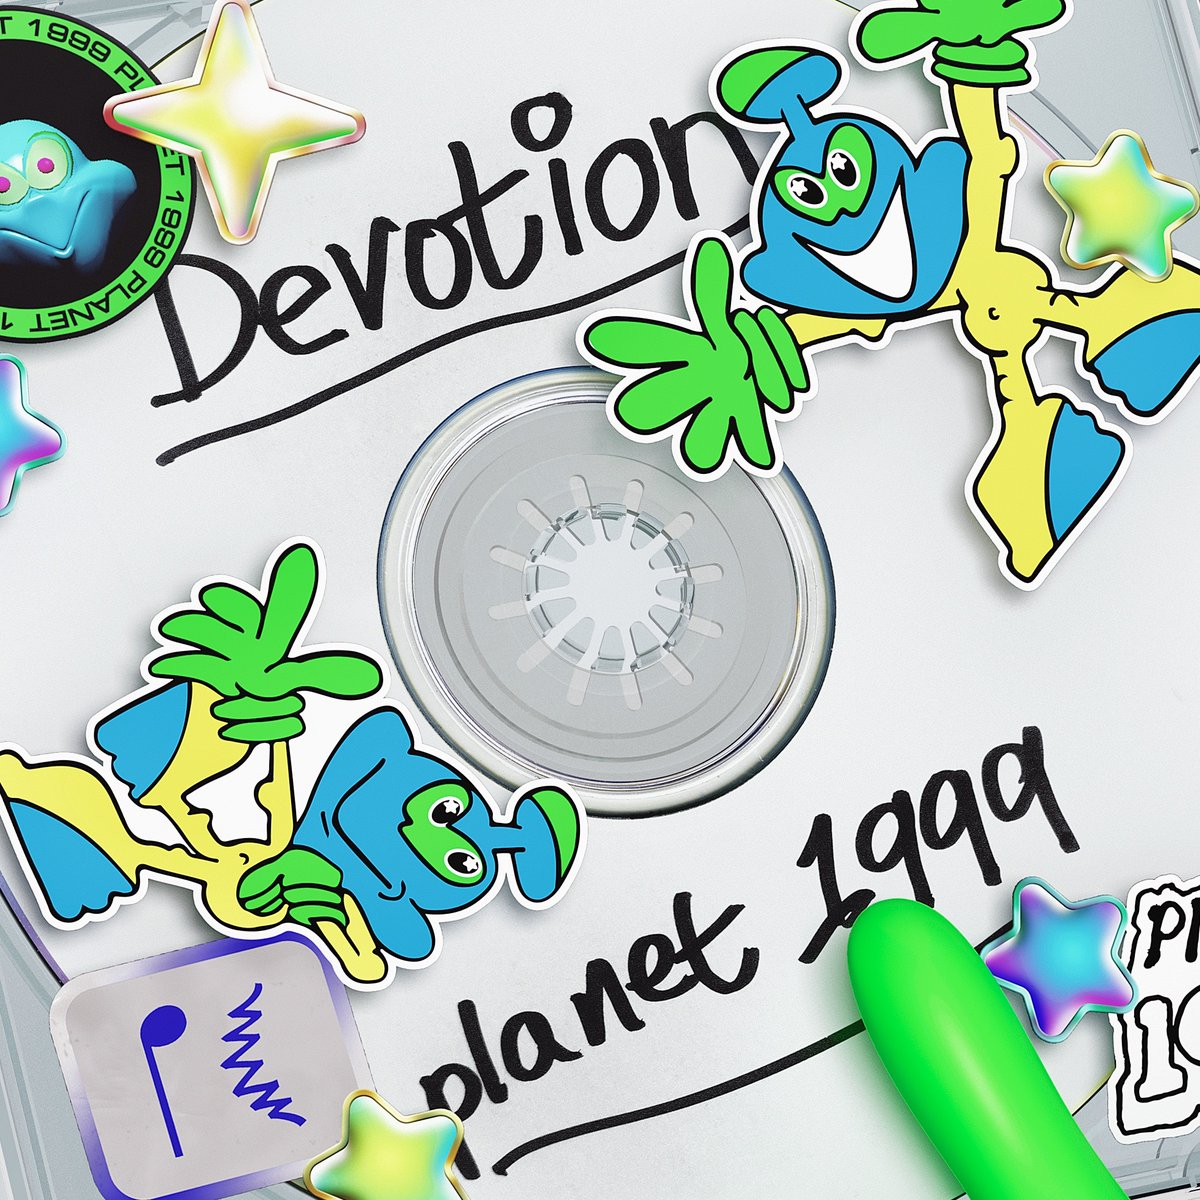 🚨🚨EP RELEASE ALERT🚨🚨 Our first EP 'Devotion' is out now on @pcmus ❤️🧨🎈🎯🥊🌶 Artwork by Leon Sadler🖍Check the video playlist on youtube.com/playlist?list=… and access to all stages 🕹 1 = Spell 🕹 2 = Party 🕹 3 = Awake 🕹 4 = Replay 🕹 5 = Haze 🕹 6 = Night 🕹 7 = Devotion